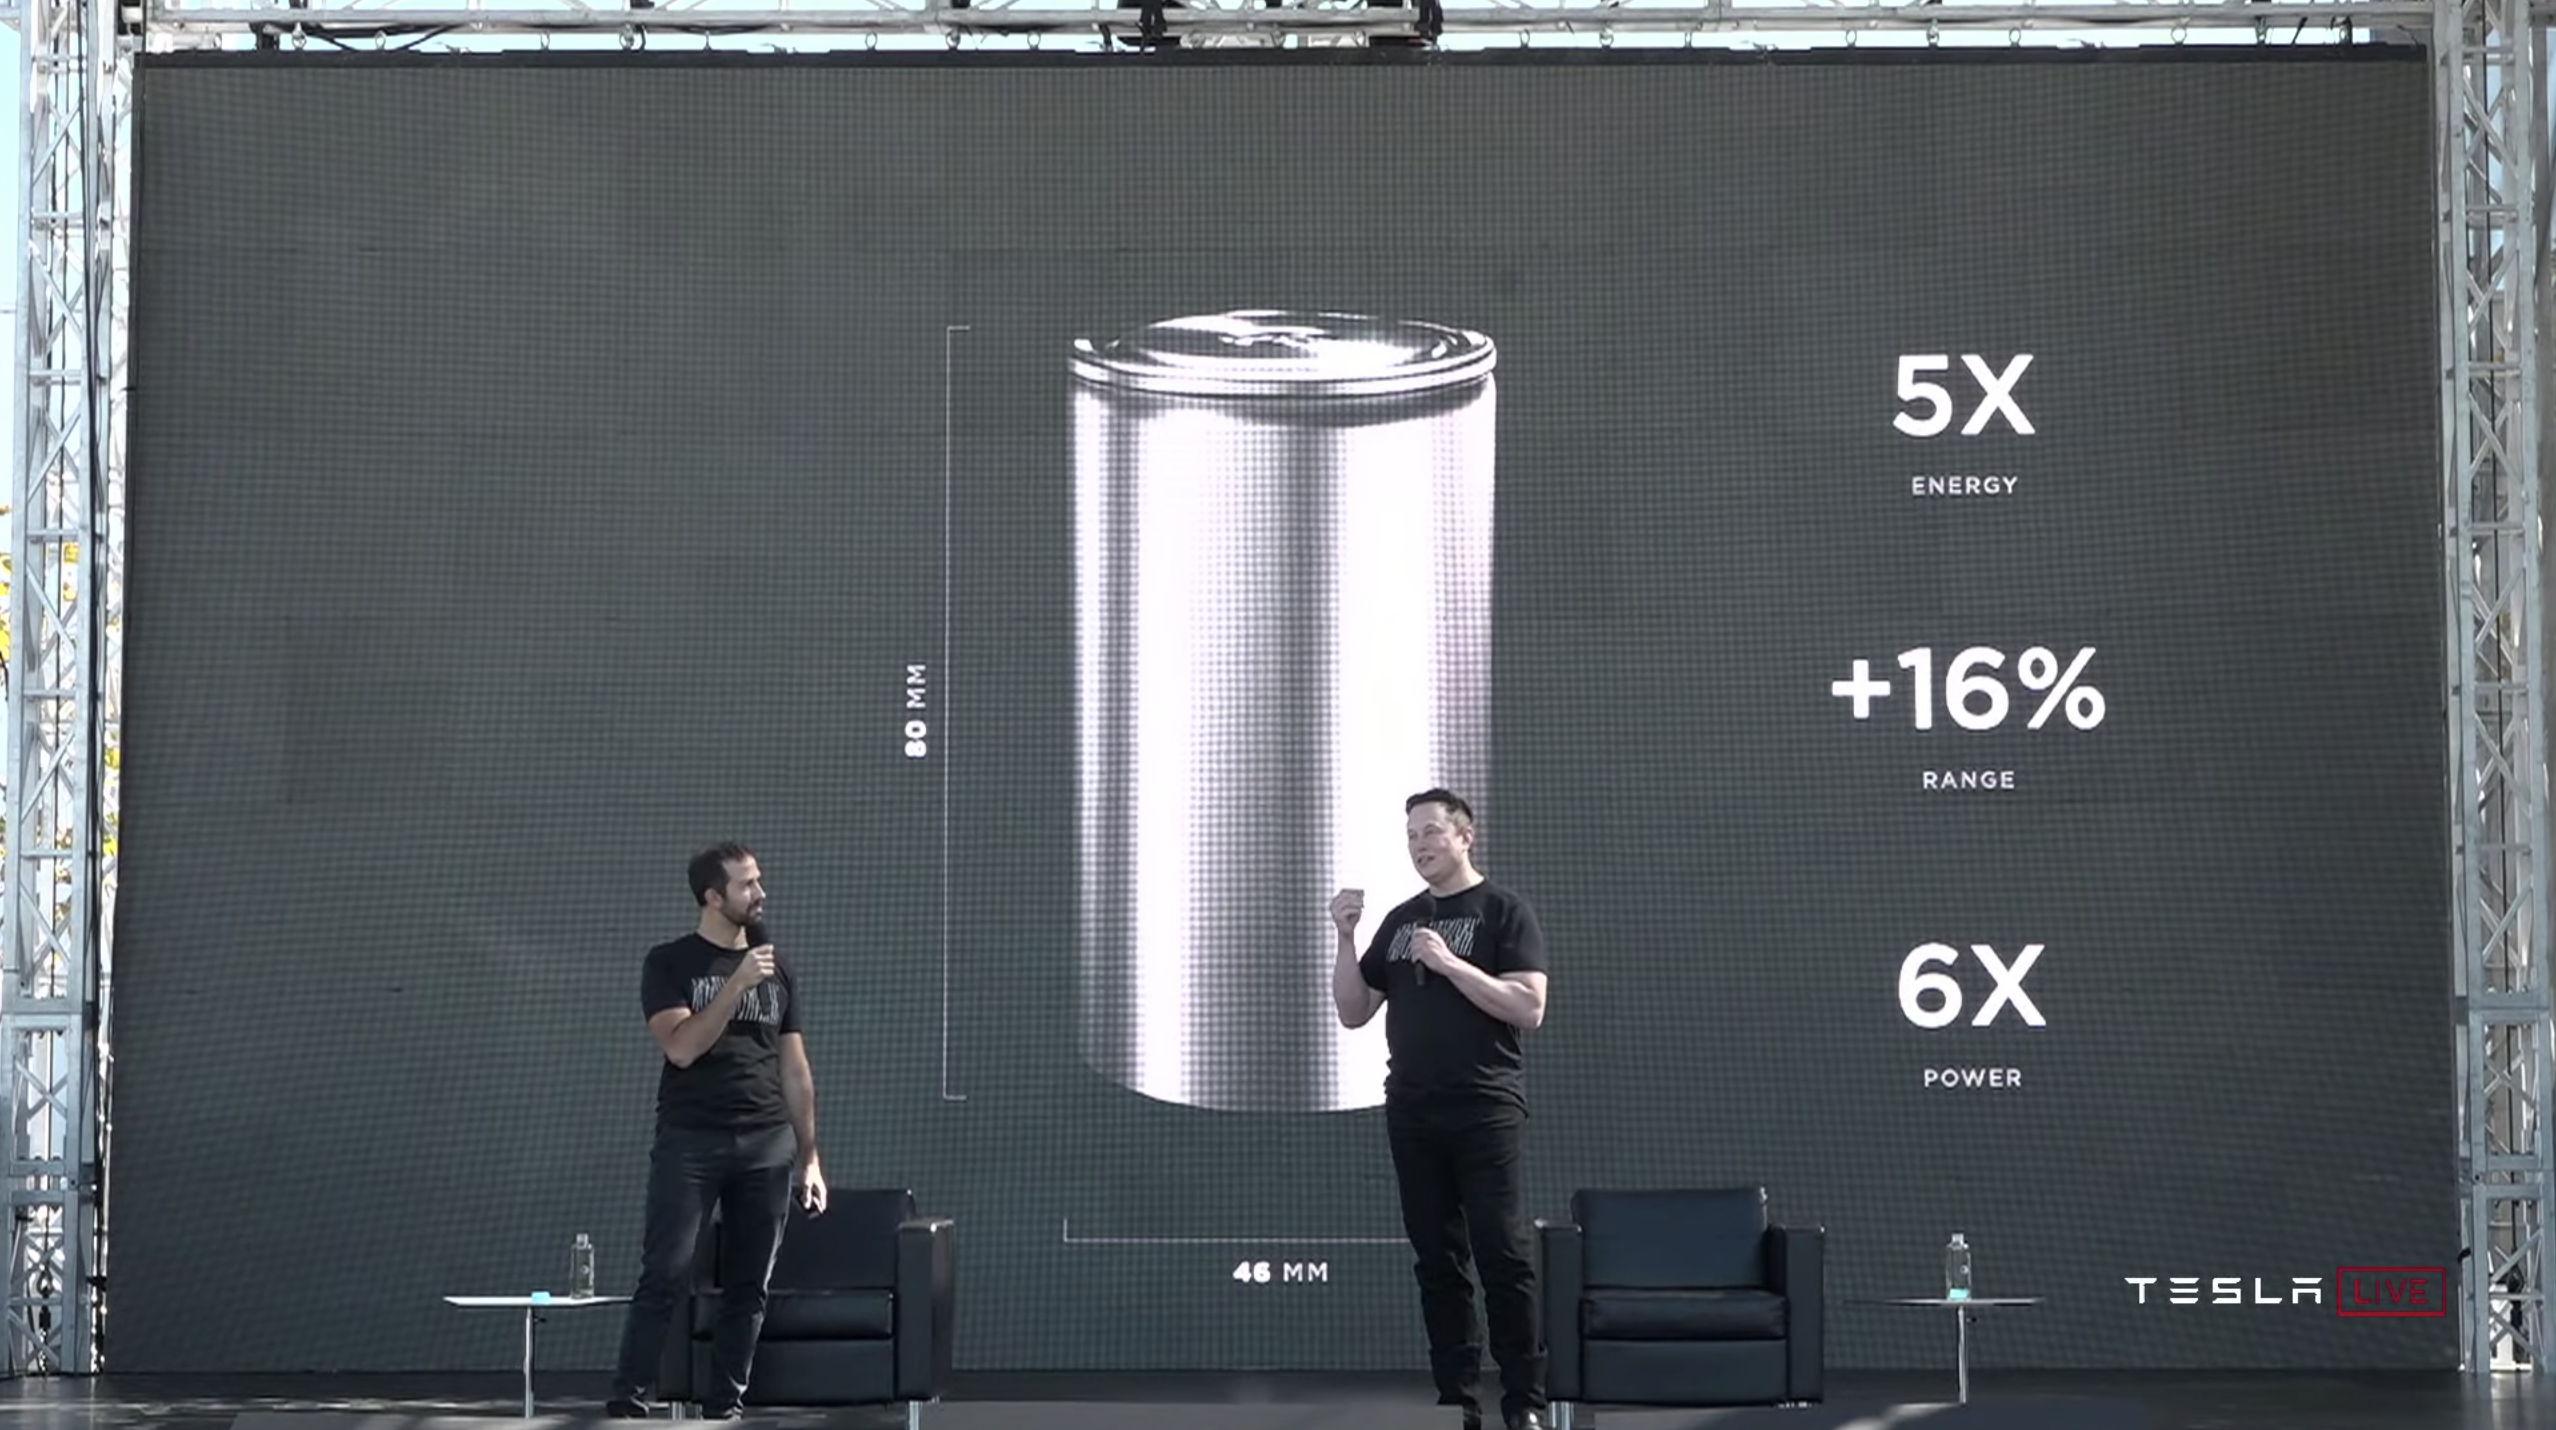 Elon Musk presenting the new envisioned battery at Tesla's Battery Day 2020.